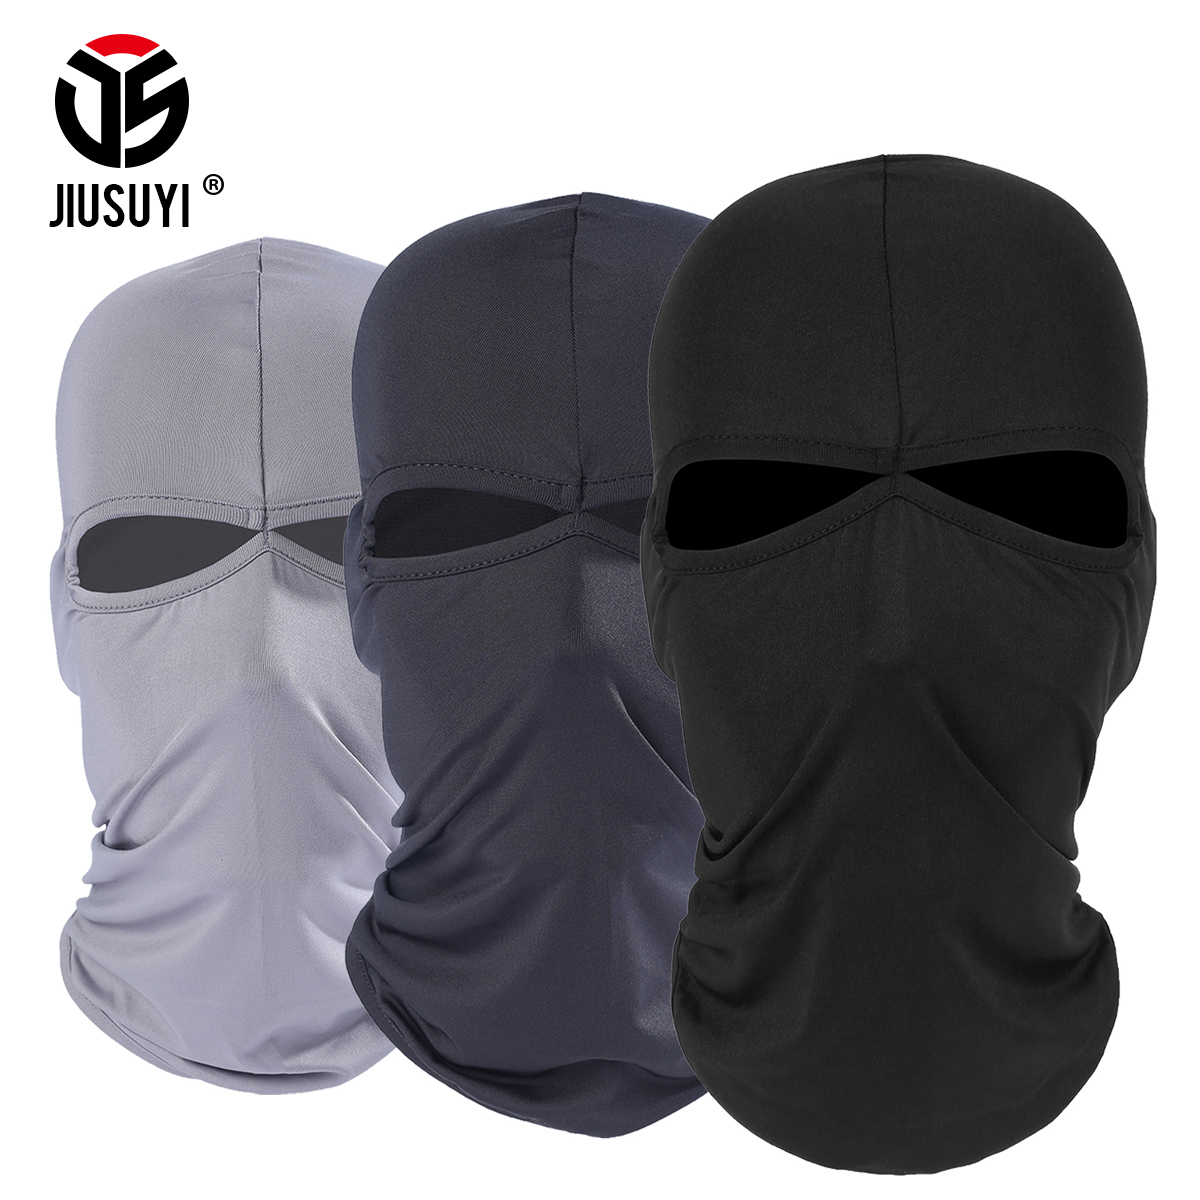 2-Hole Balaclava Liner-Protection Paintball-Helmet Combat Airsoft Tactical Windproof